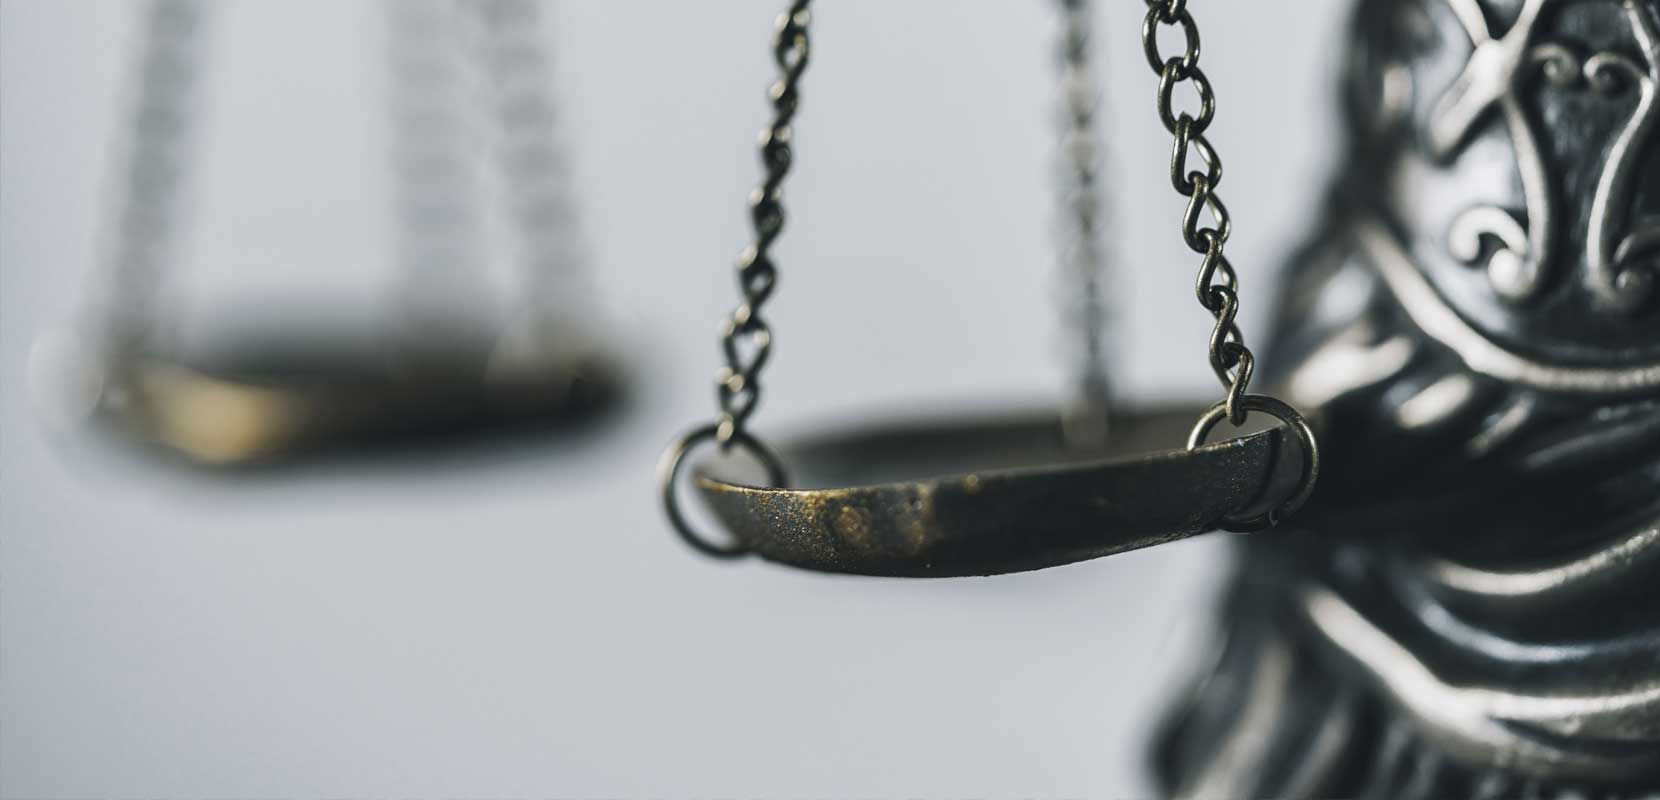 Creating the law firm of the future